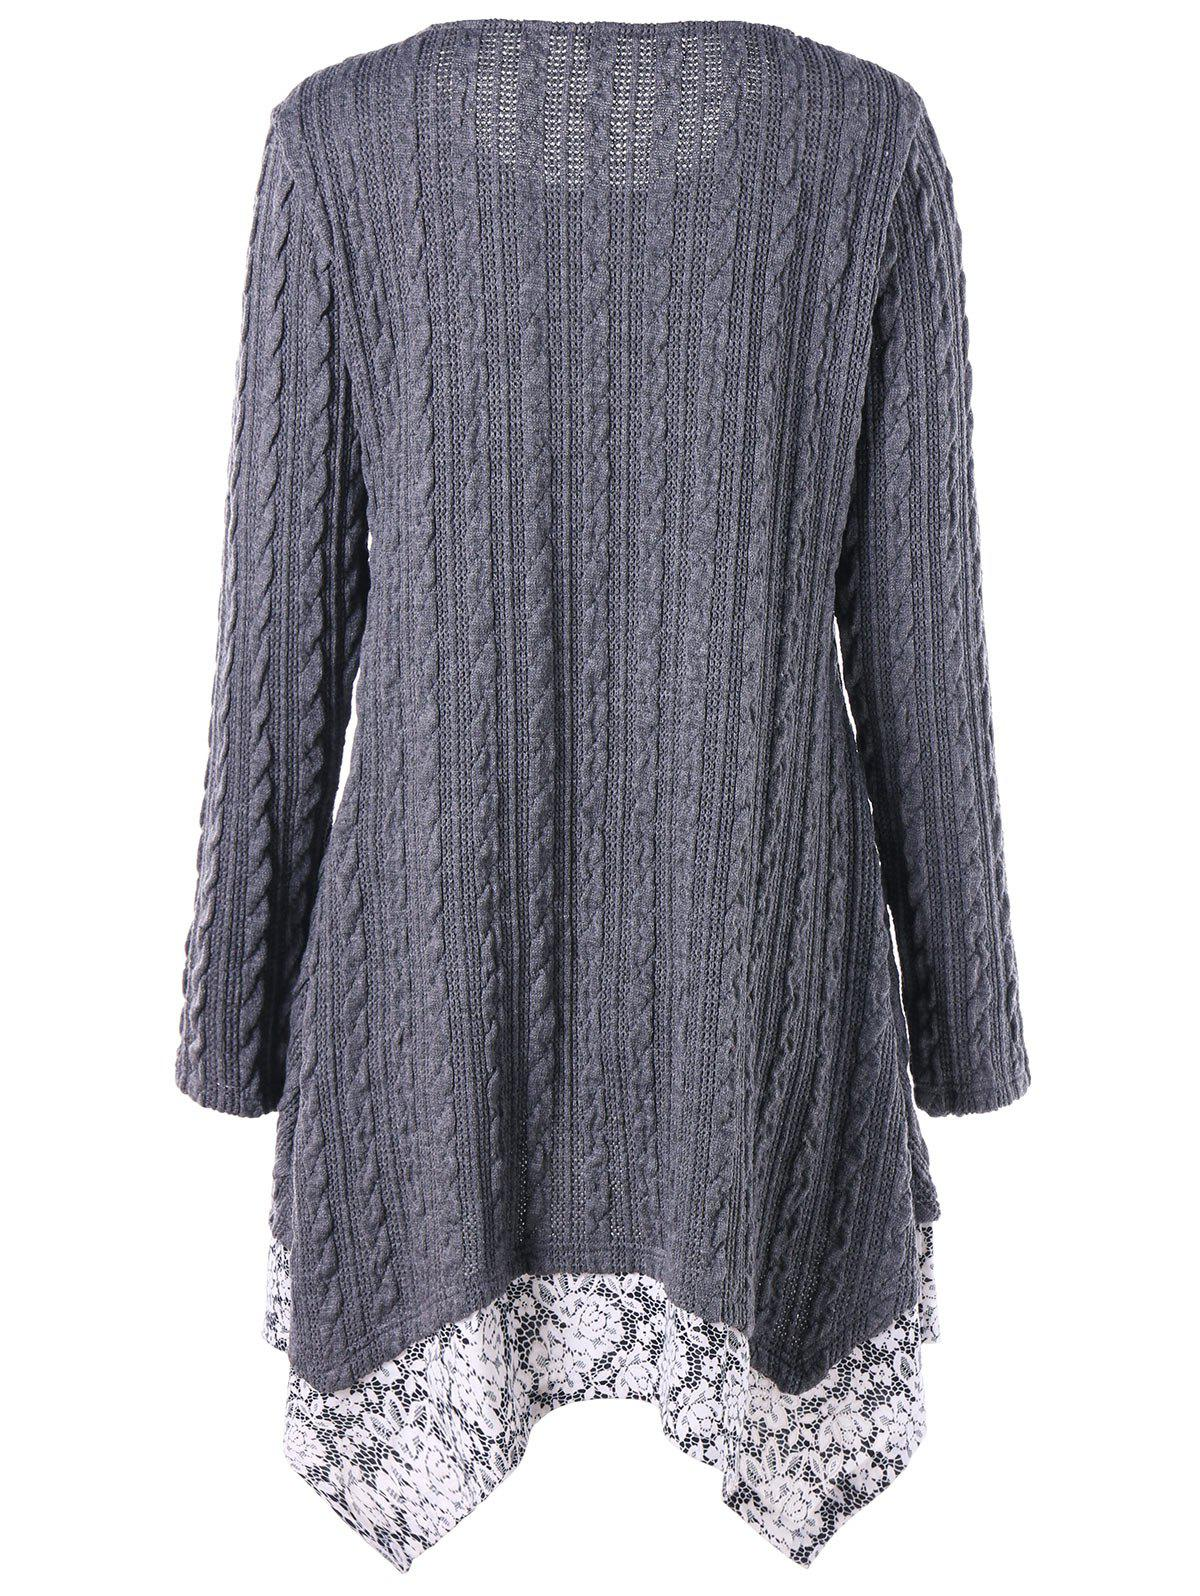 Floral Trimmed Cable Knitted Asymmetric Dress - GRAY L